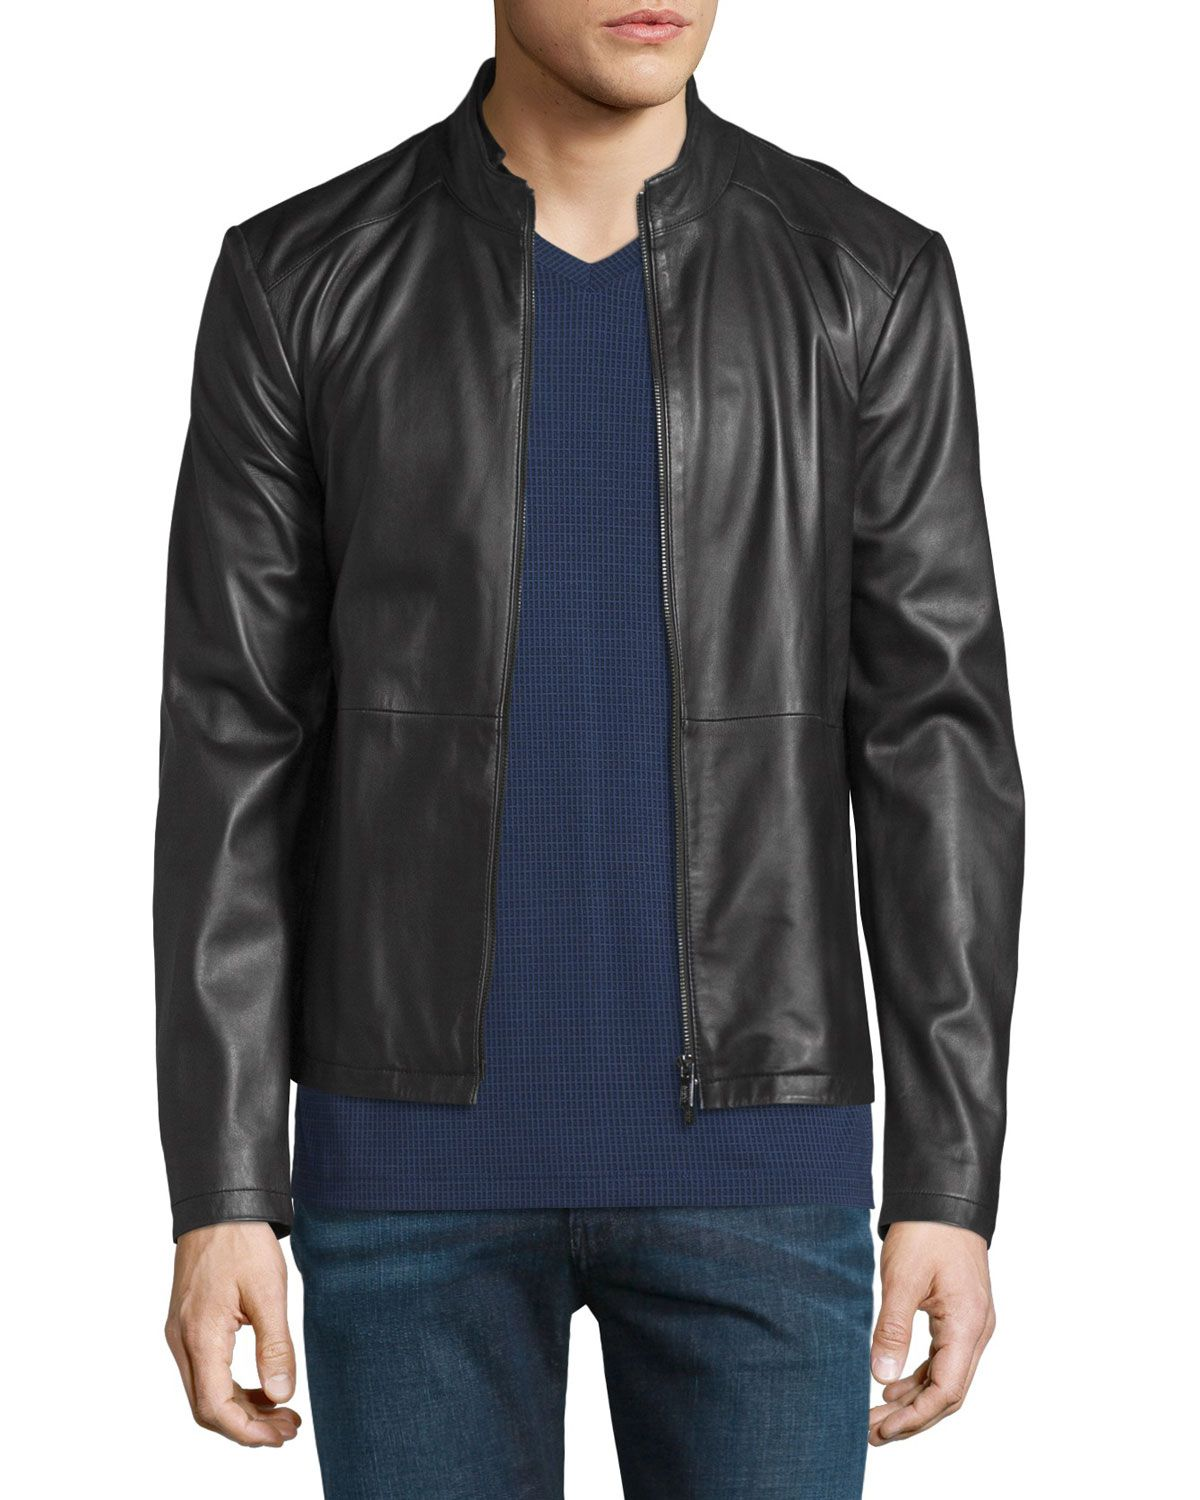 3abed8d1f Cropped Leather Jacket Black | *Outerwear > Coats & Jackets ...